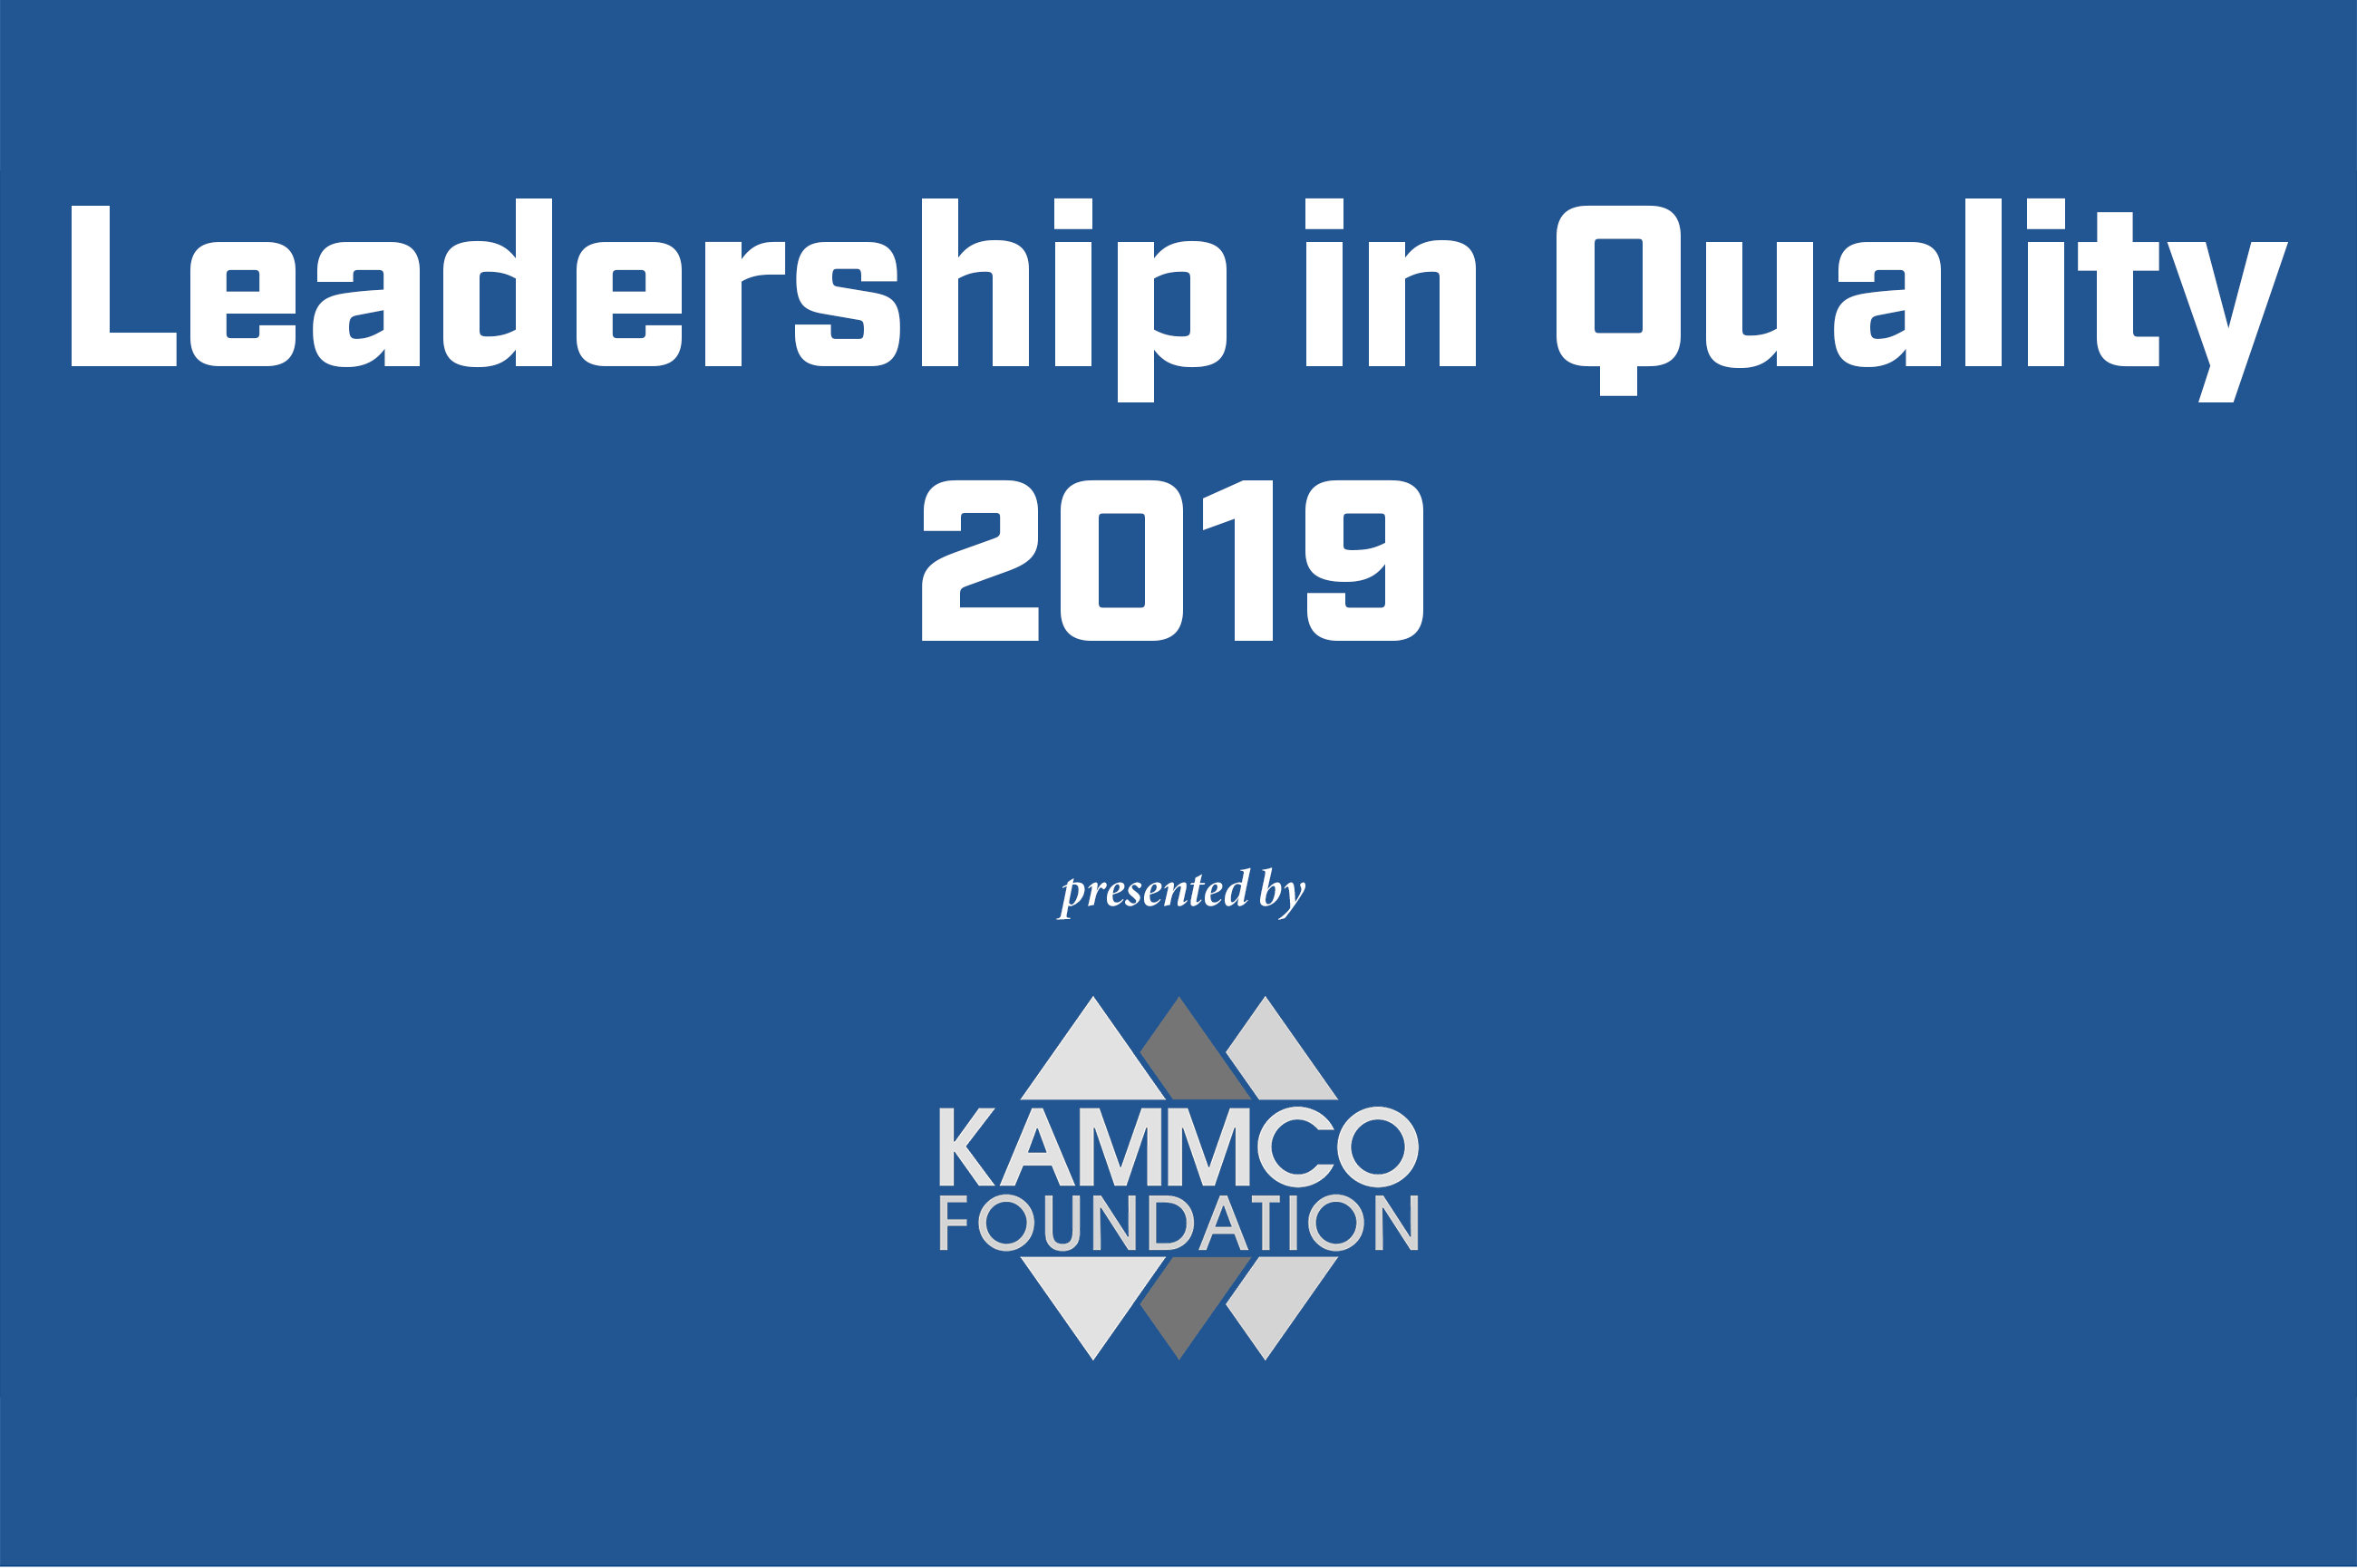 Leadership in Quality Award 2019